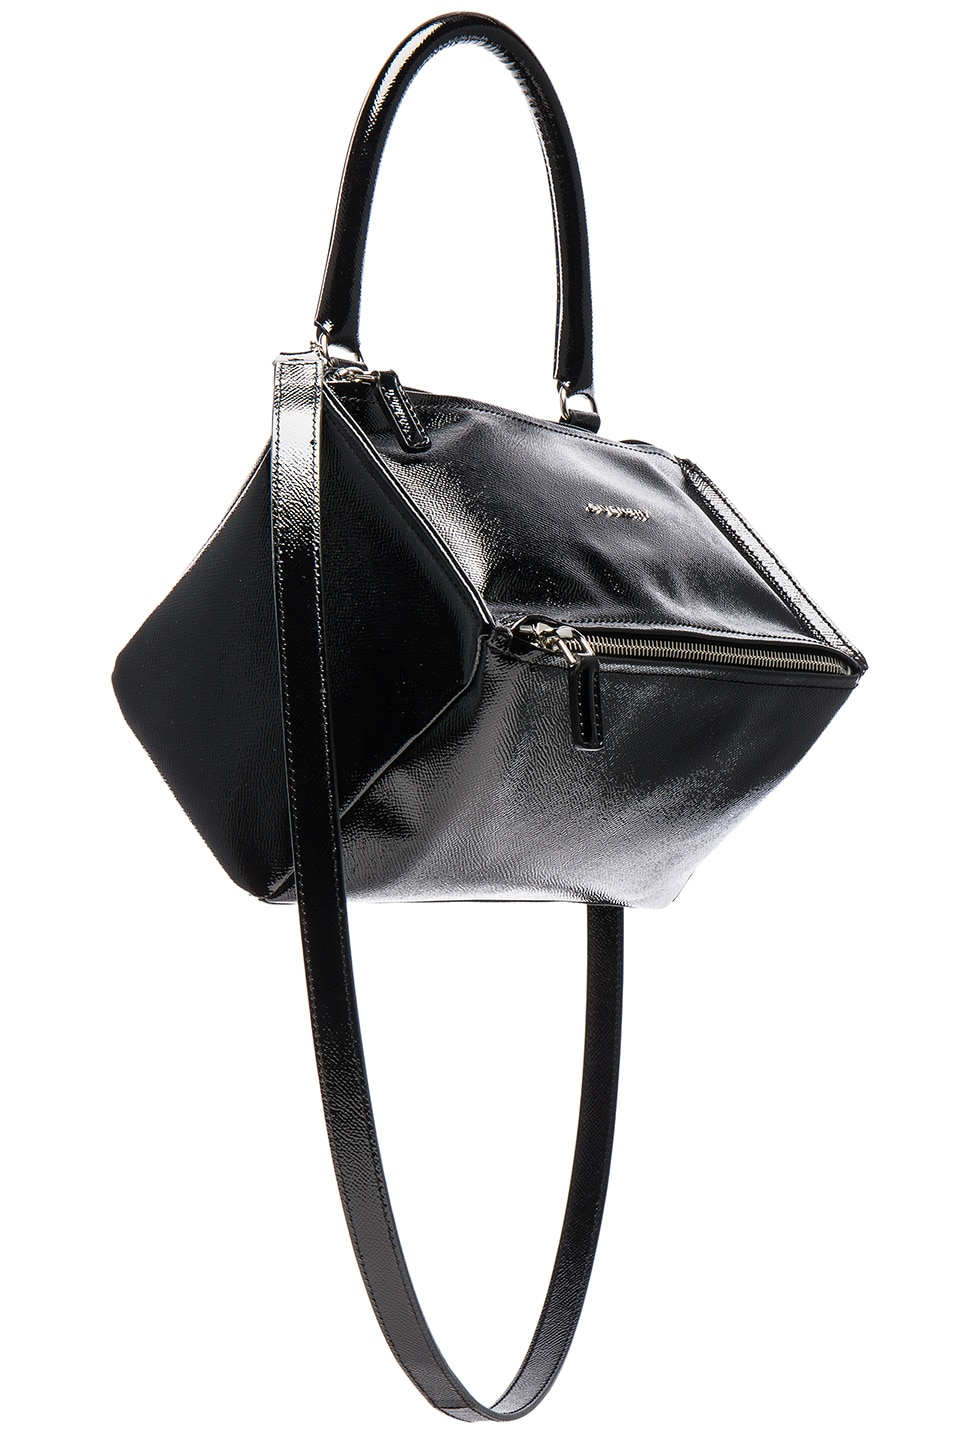 f0de5b2d396 Image 1 of Givenchy Pandora Patent Small Bag in Black